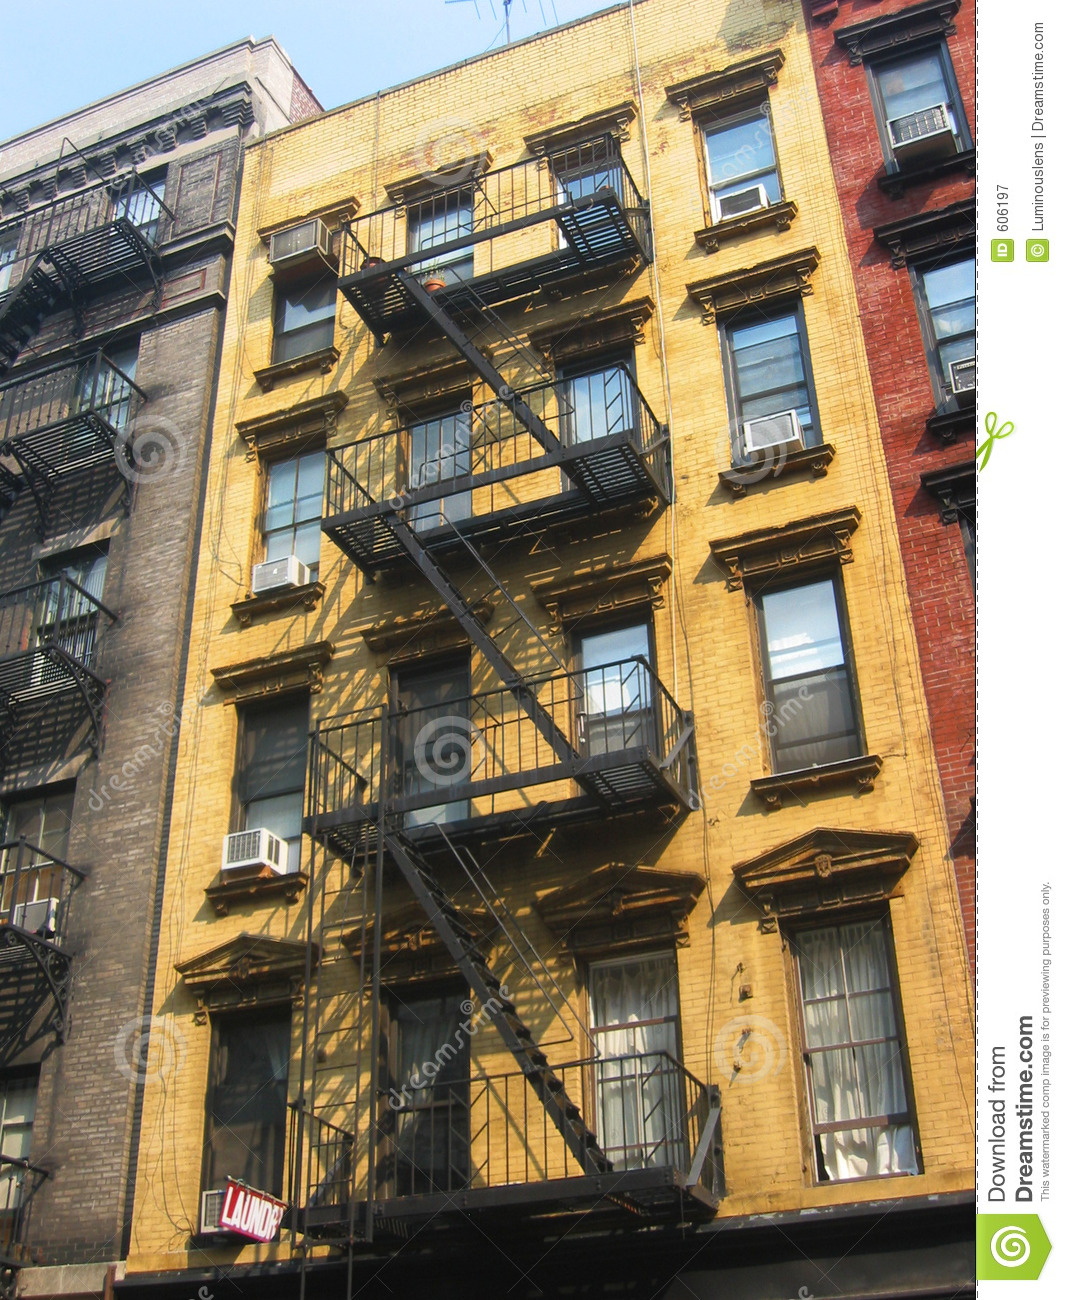 Apartement: New York City Apartment Buildings Royalty Free Stock